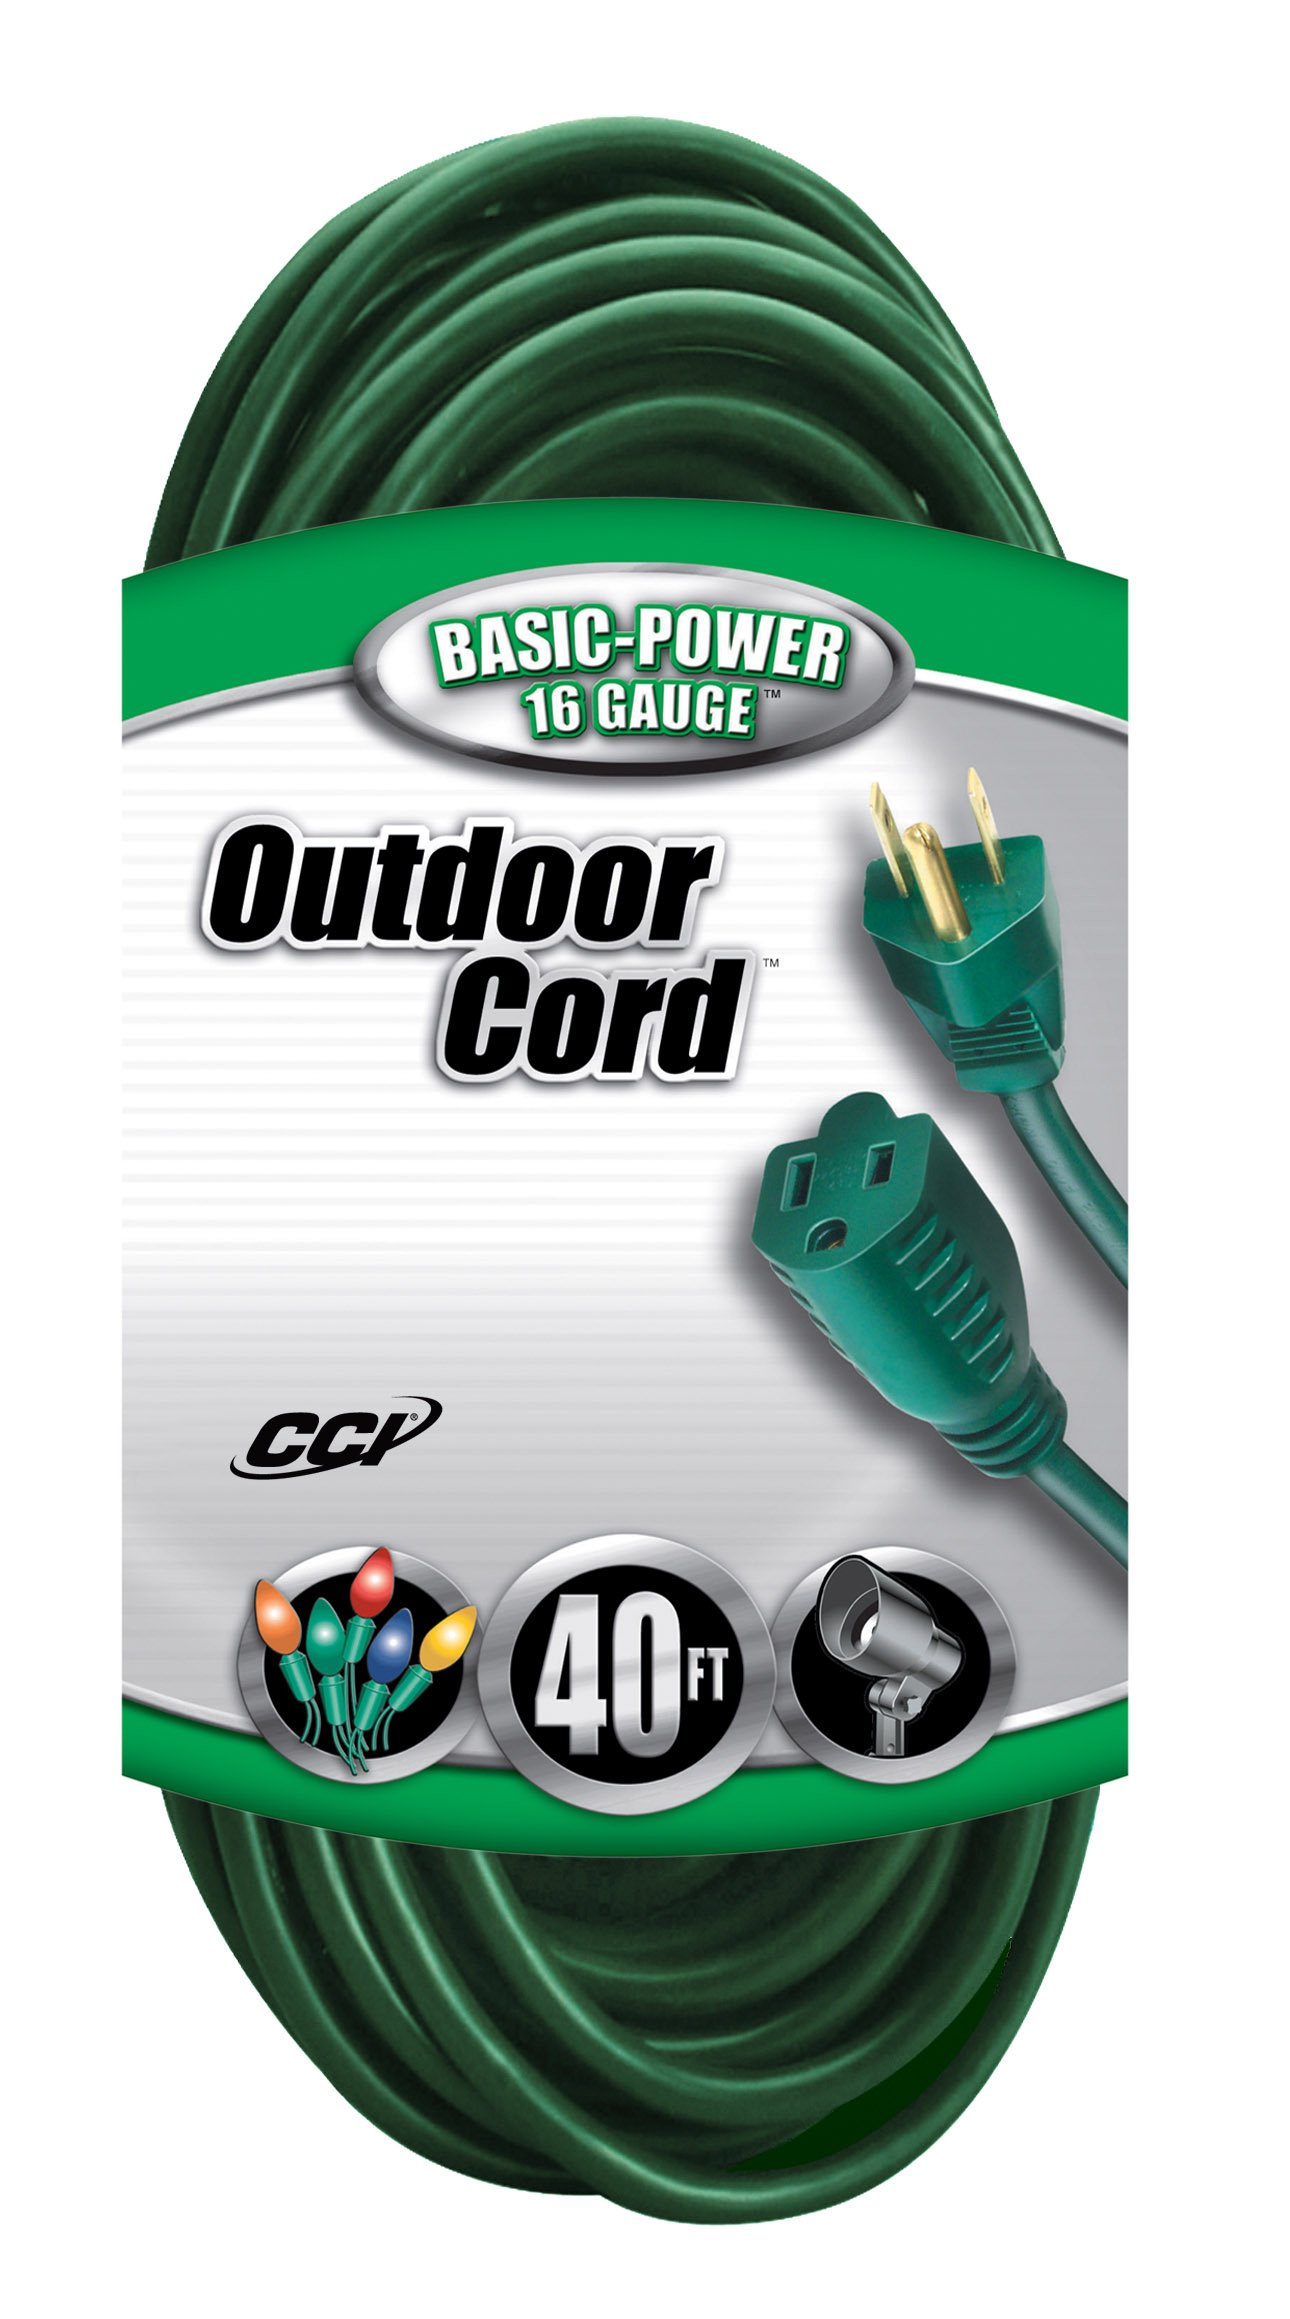 Coleman Cable 2356 16/3 Vinyl Landscape Outdoor Extension Cord, Green, 40 Foot by Coleman Cable (Image #1)